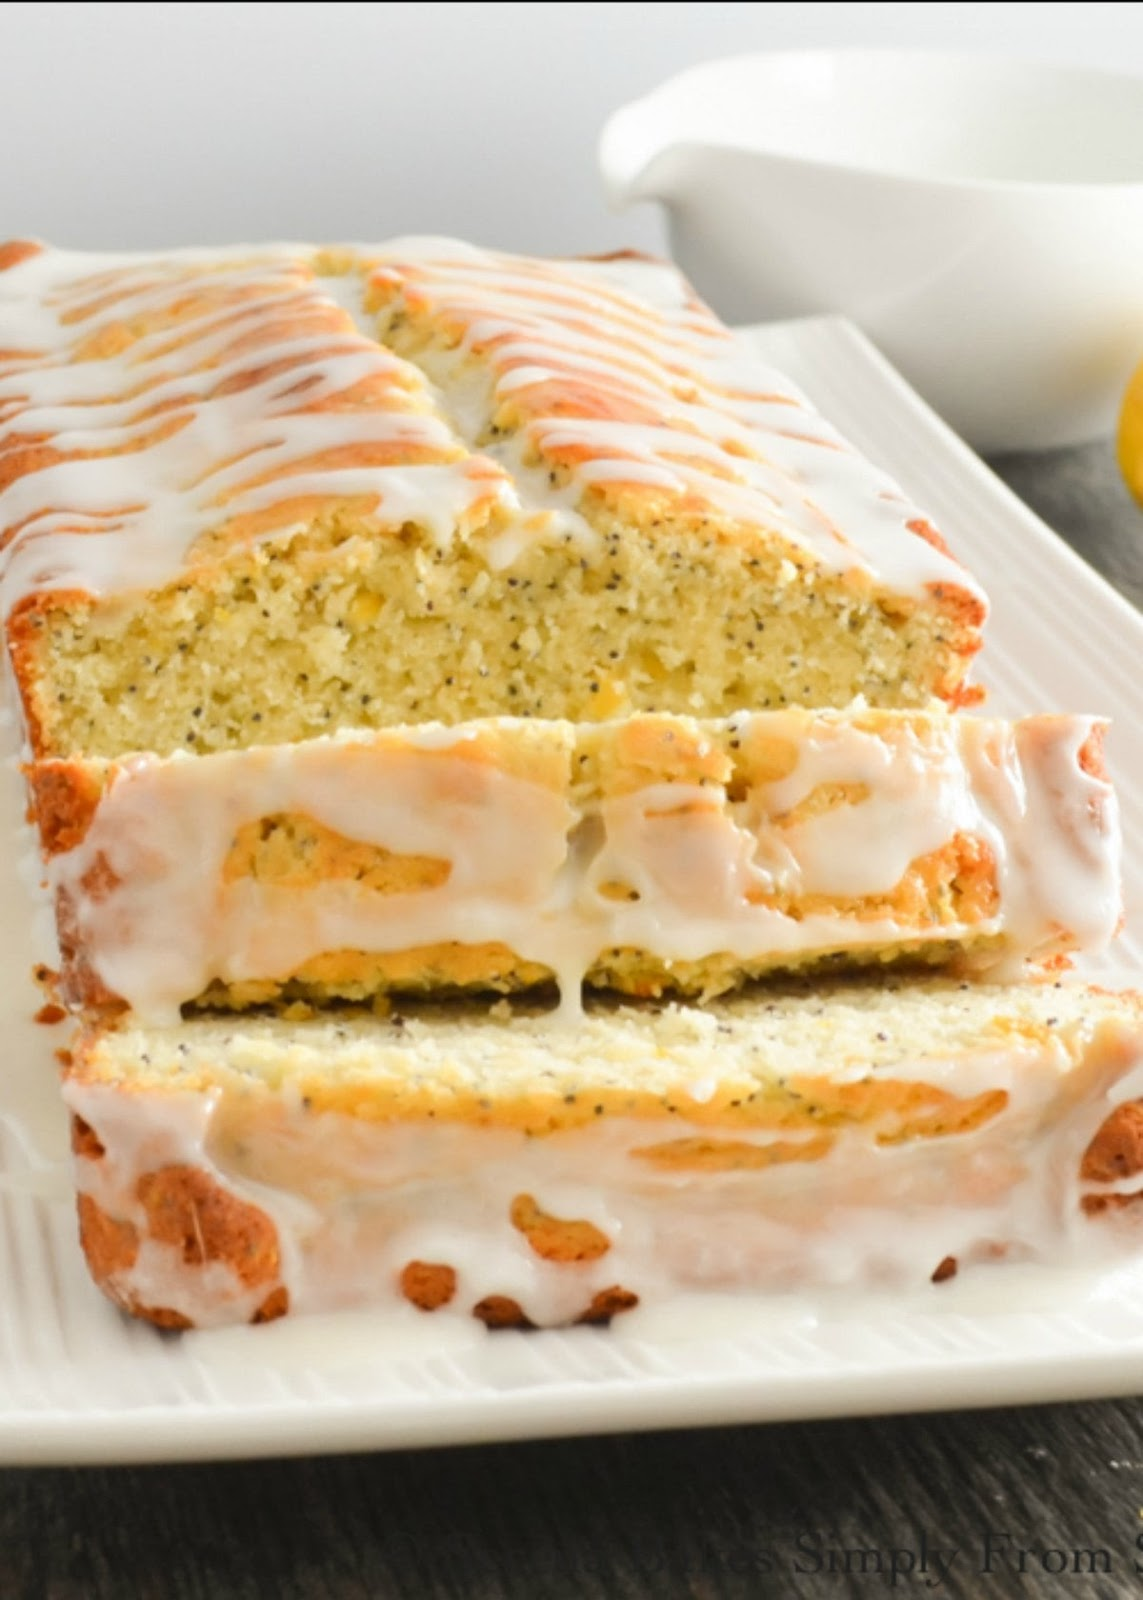 Lemon Poppy Seed Bread recipe is a favorite for breakfast or dessert with a delicious light crumb and plenty of lemon shining through. A favorite Lemon Loaf from Serena Bakes Simply From Scratch.